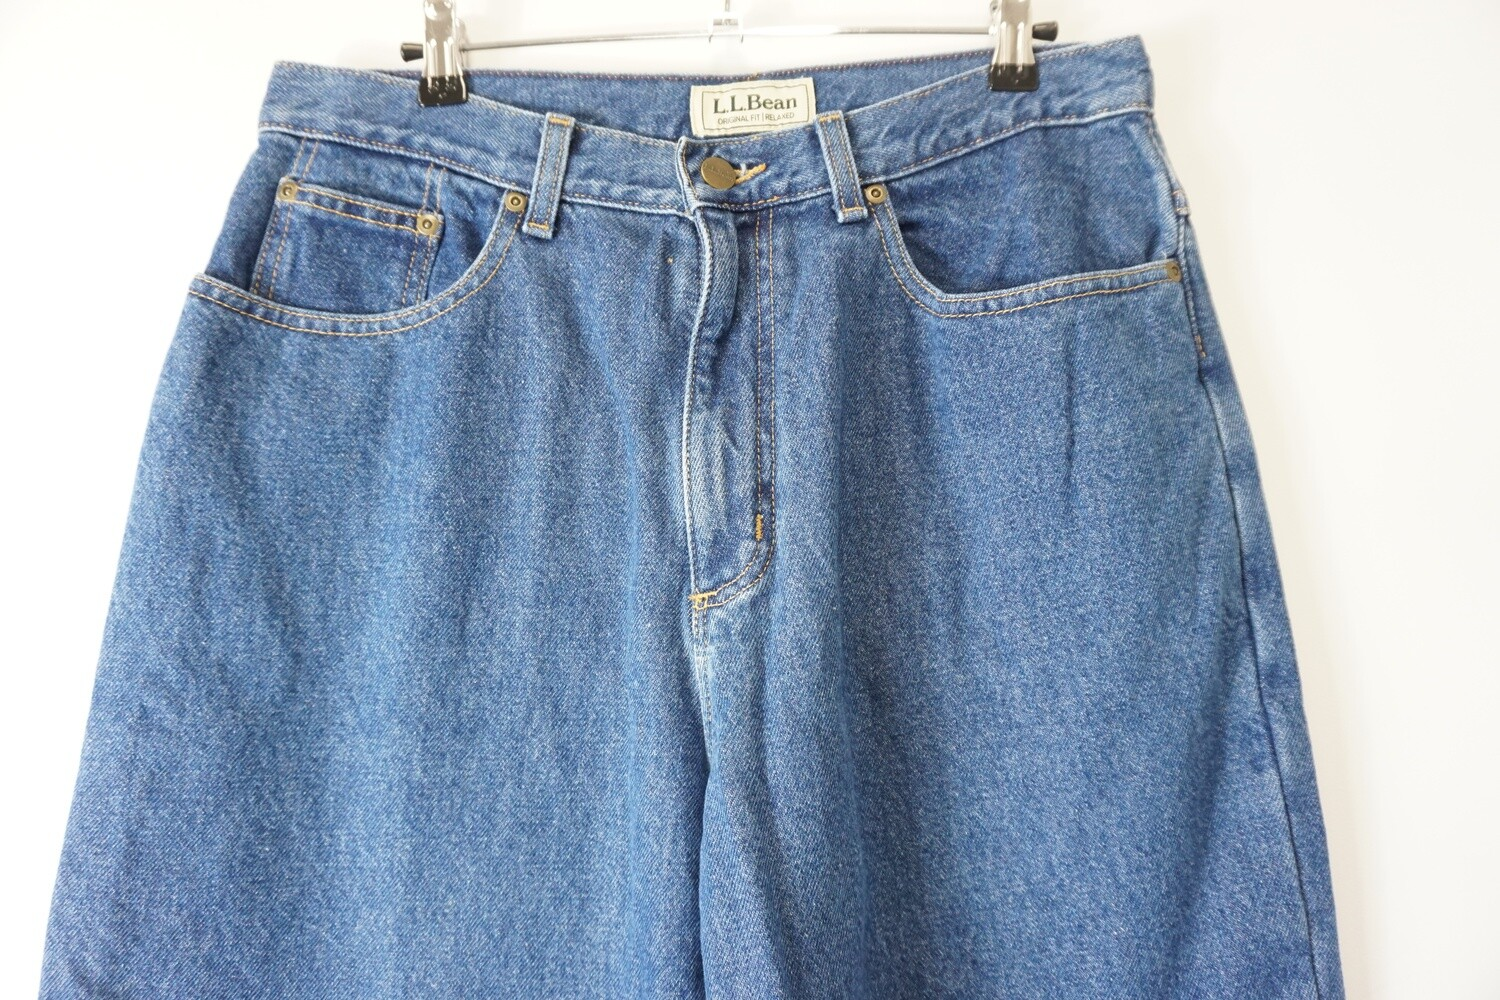 LL Bean Jeans Lined Size 12M/T